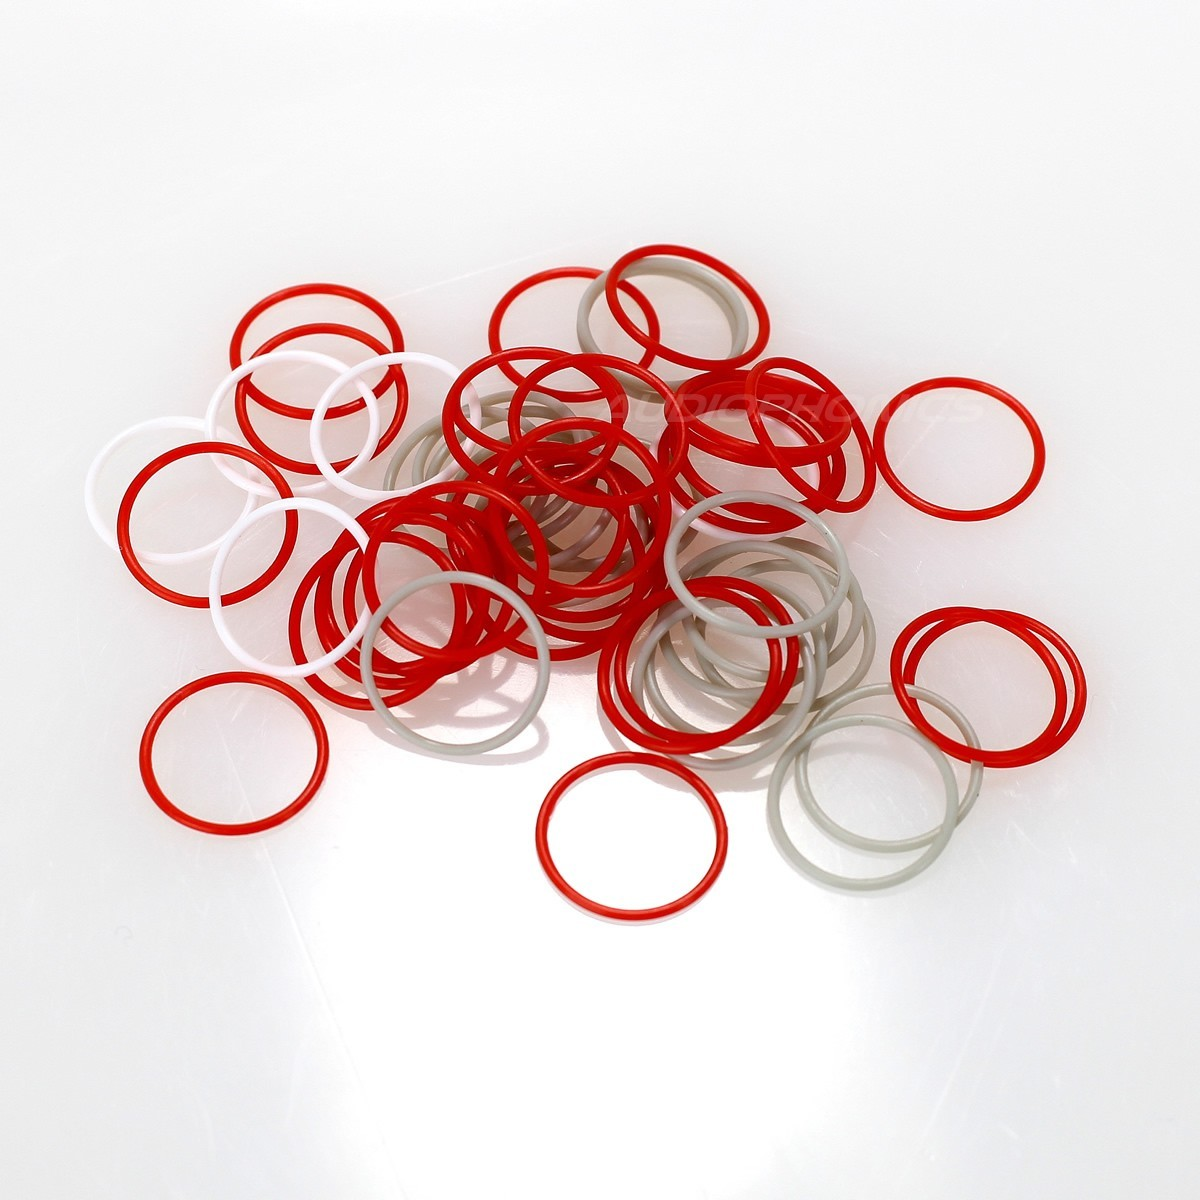 Silicone O Ring 1 mm thickness rouge (x10) Ø14mm